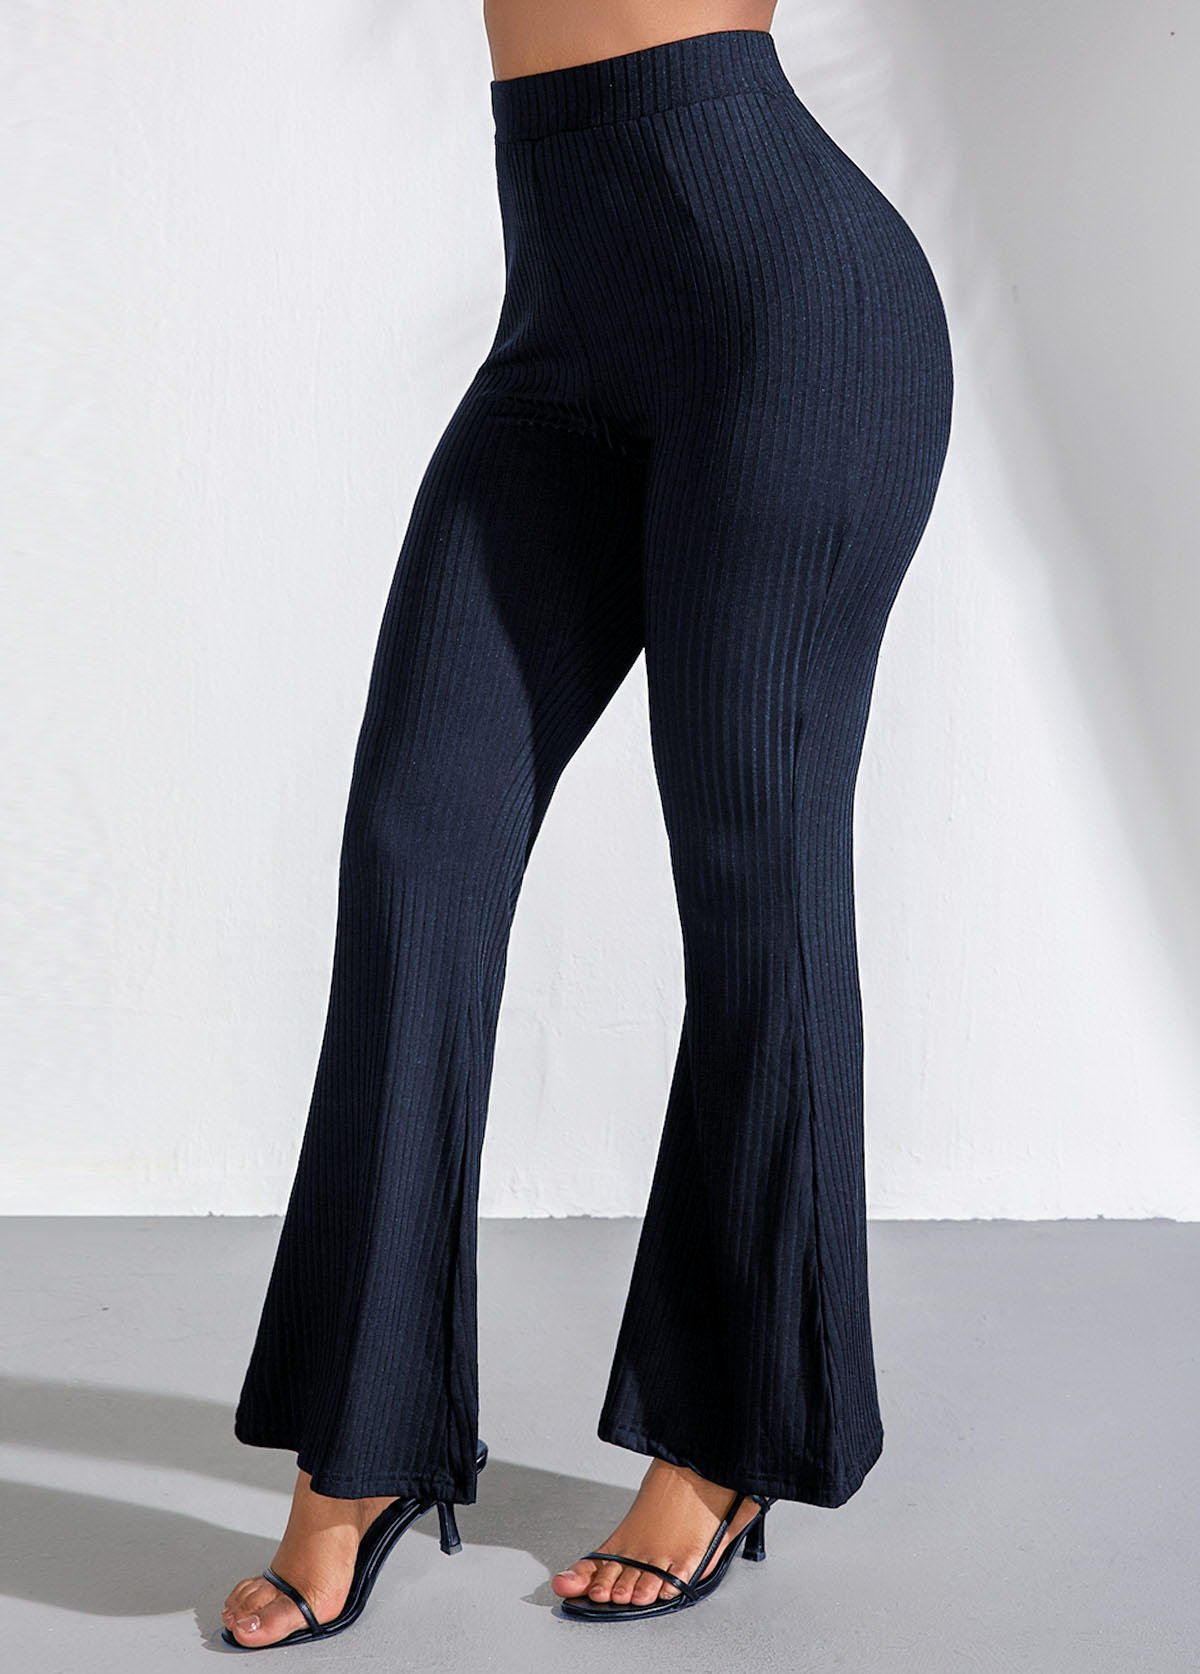 High Waist Navy Blue Flare Pants